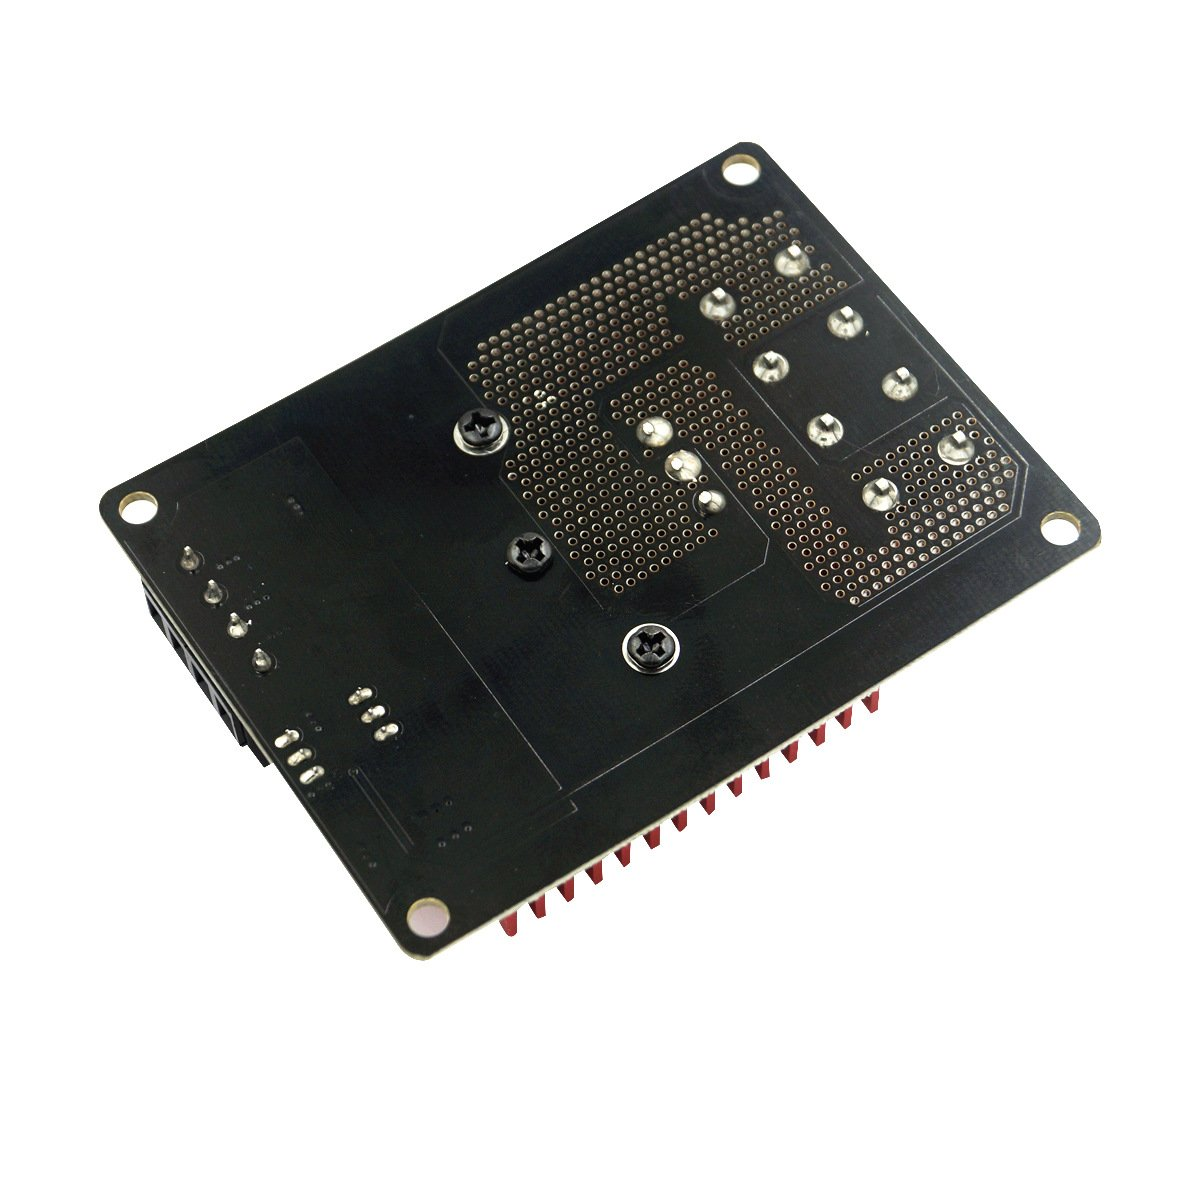 UEETEK 3D Printer Heating Controller MKS MOSFET for Heatbed Extruder MOS Module